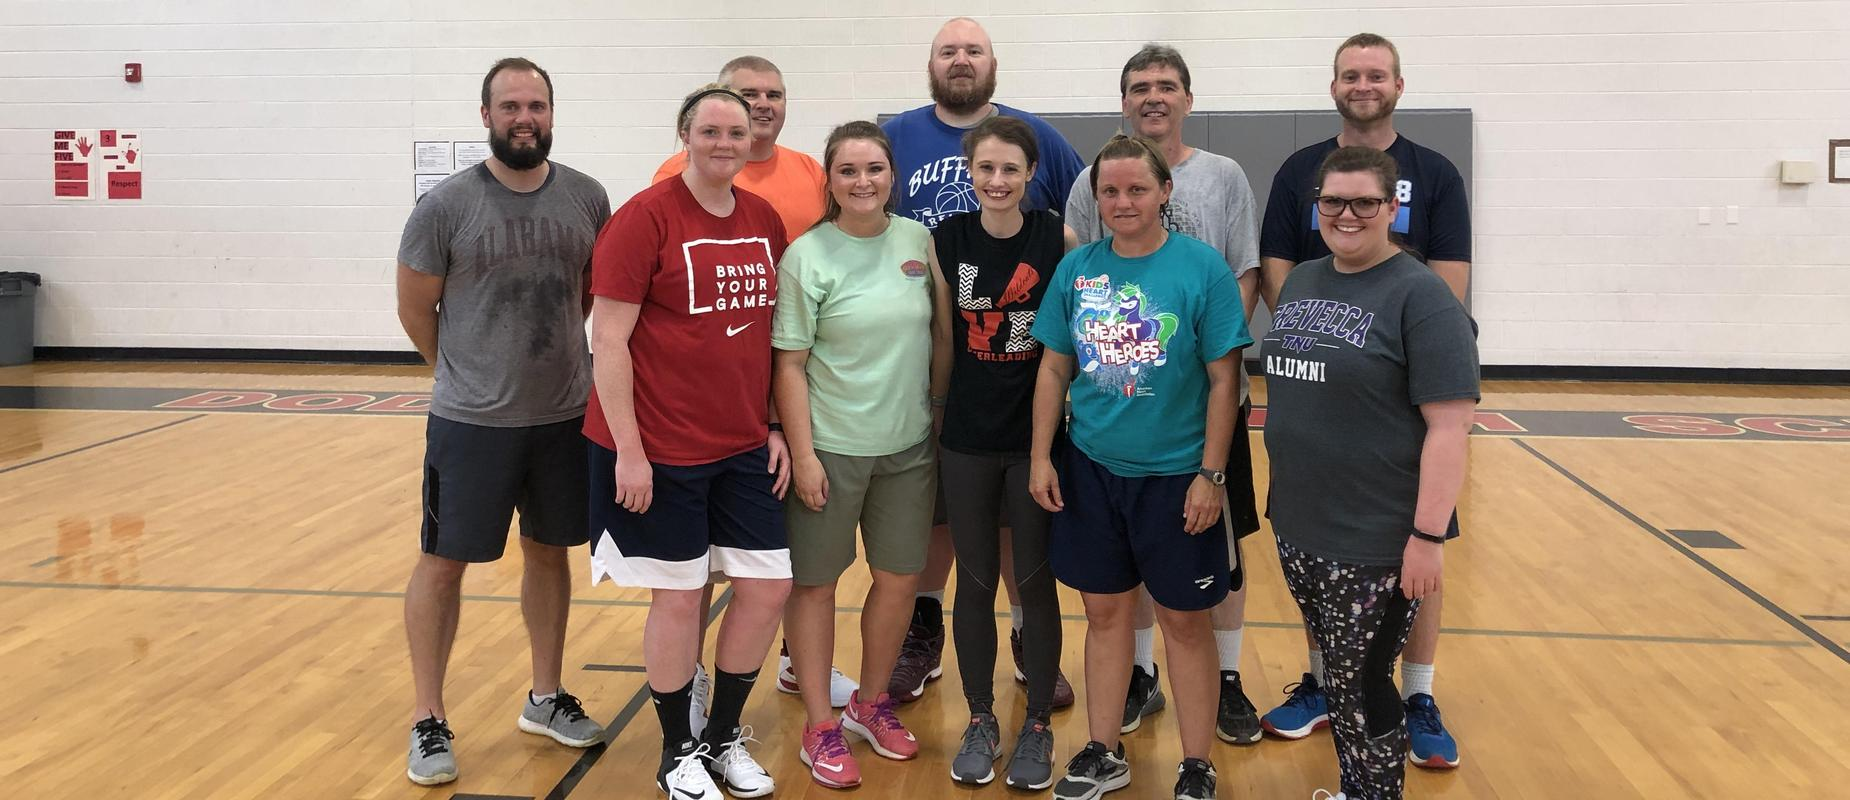 group of teachers that played in 8th grade vs Teachers  basketball game